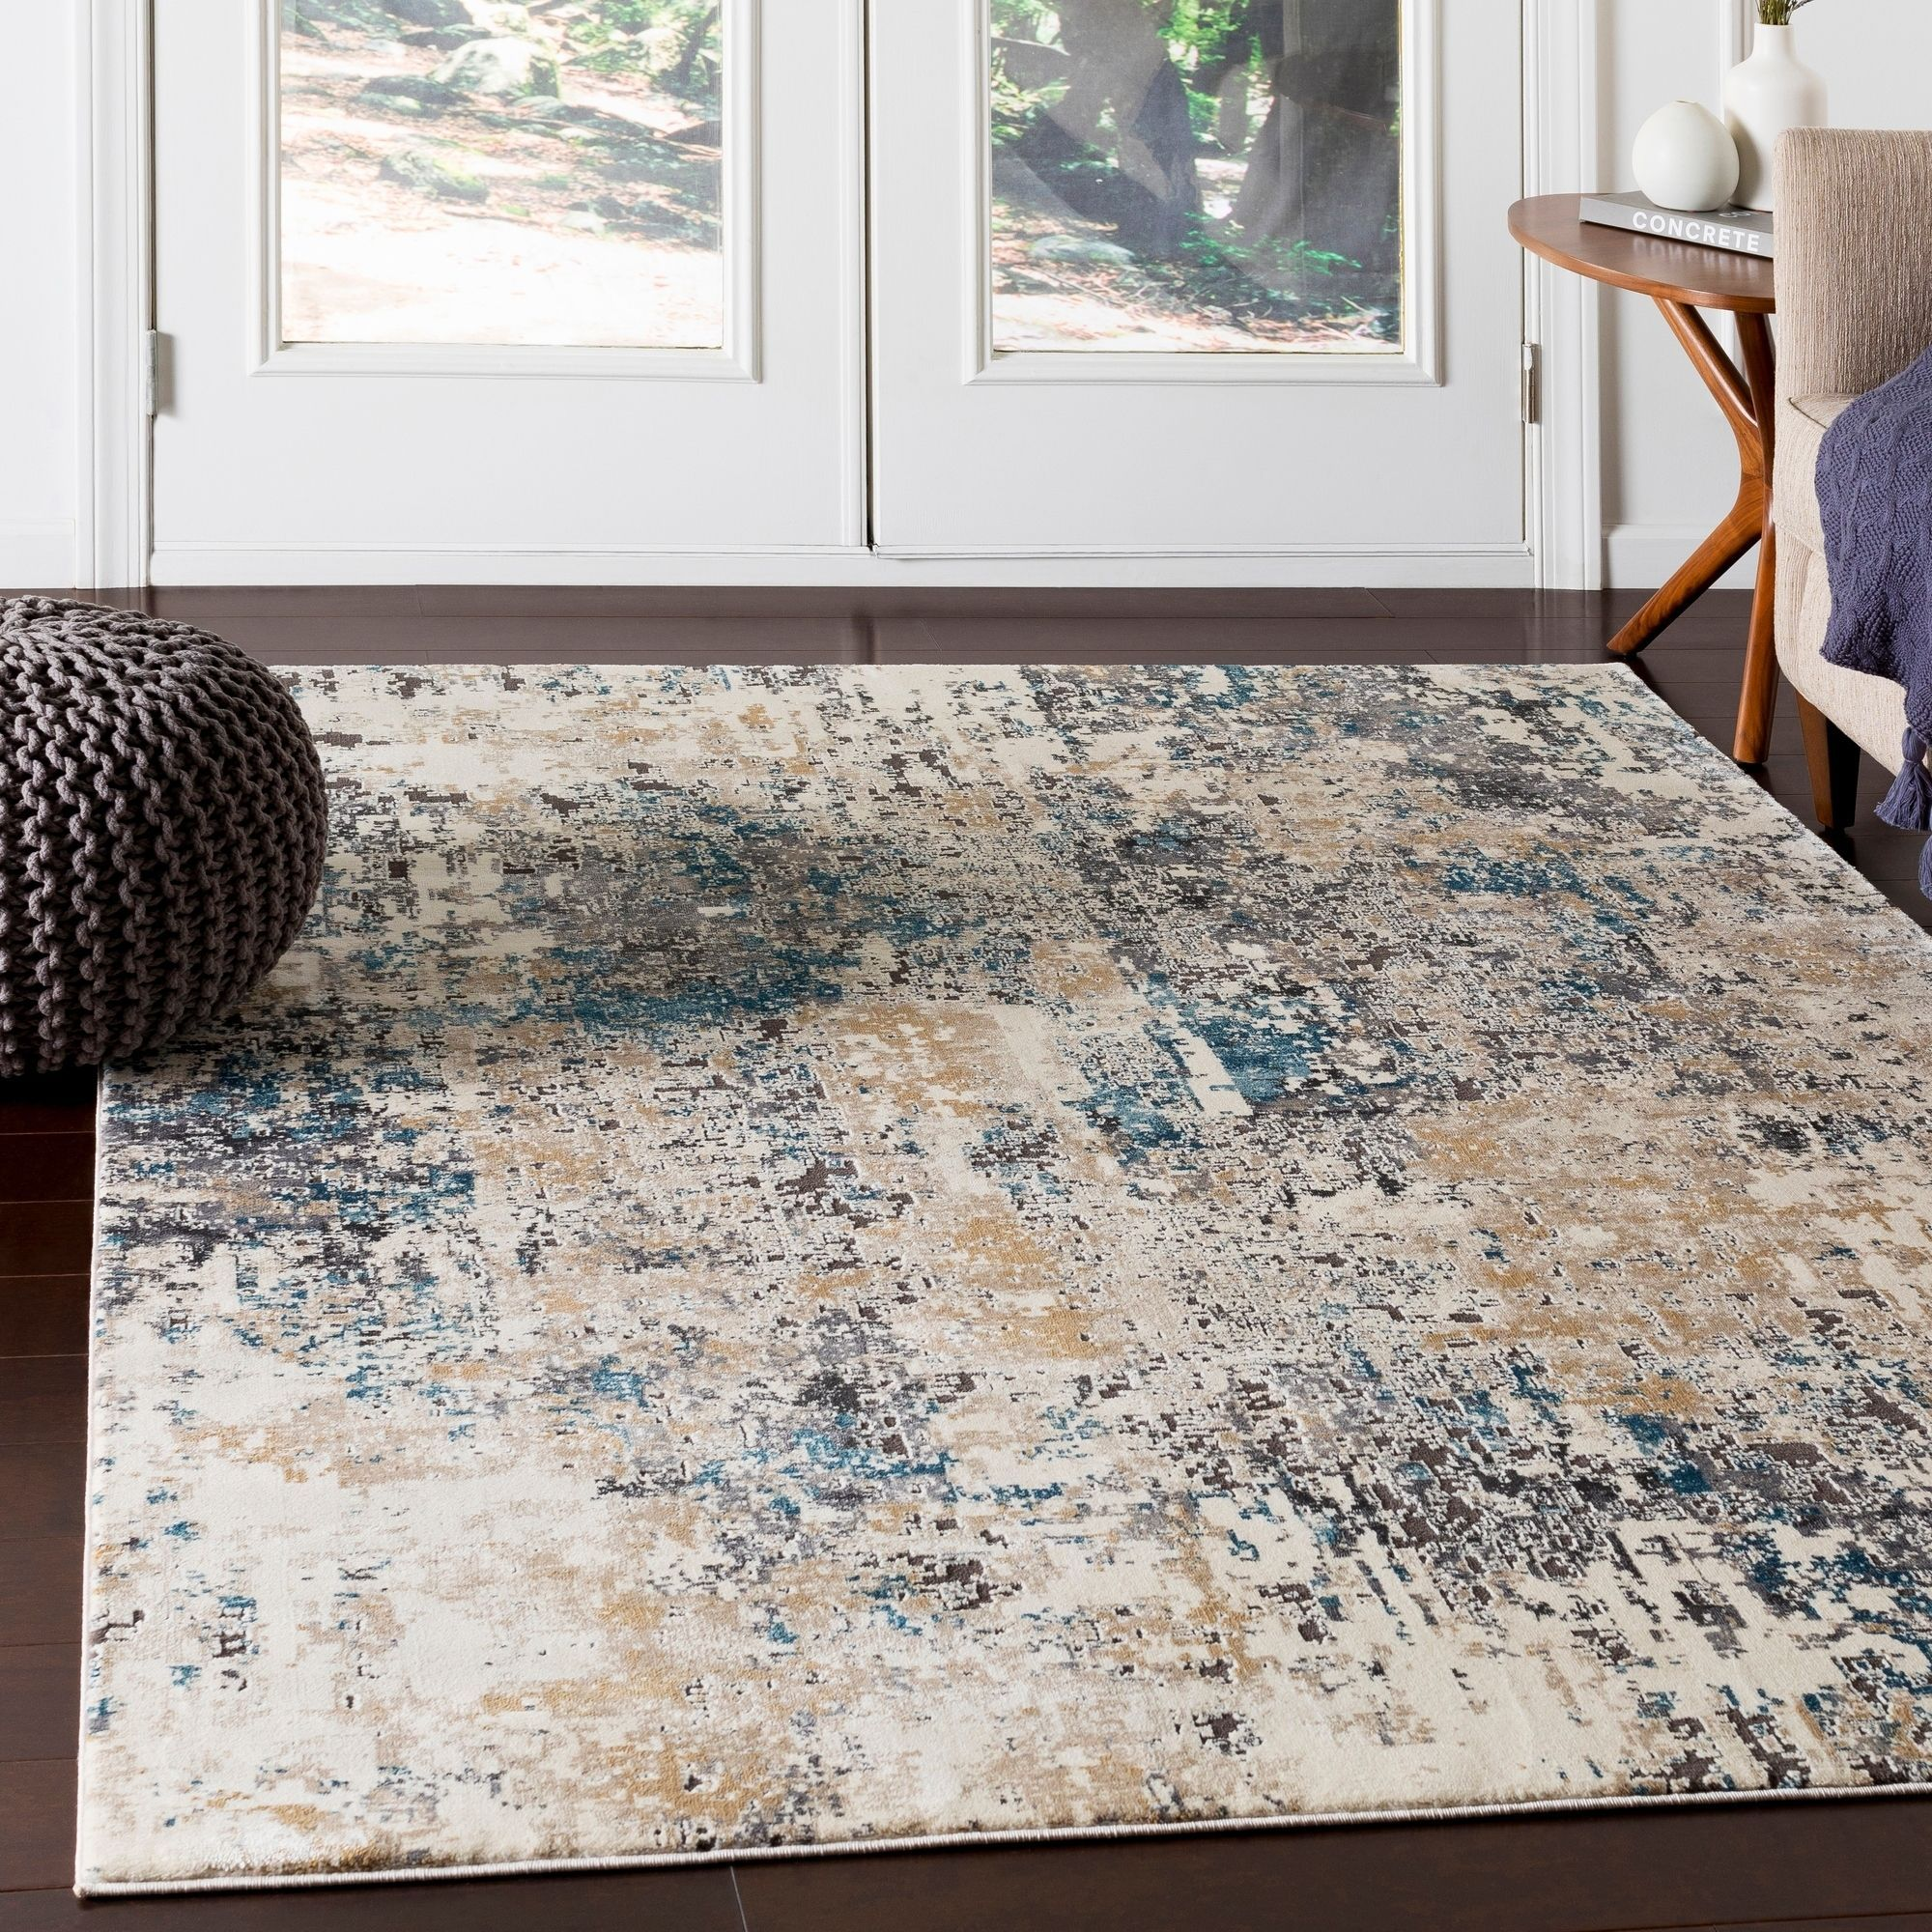 Porch Den Highcreek Charcoal Teal Abstract Area Rug 9 3 X 12 3 In 2020 Area Rugs Beige Area Rugs Rugs